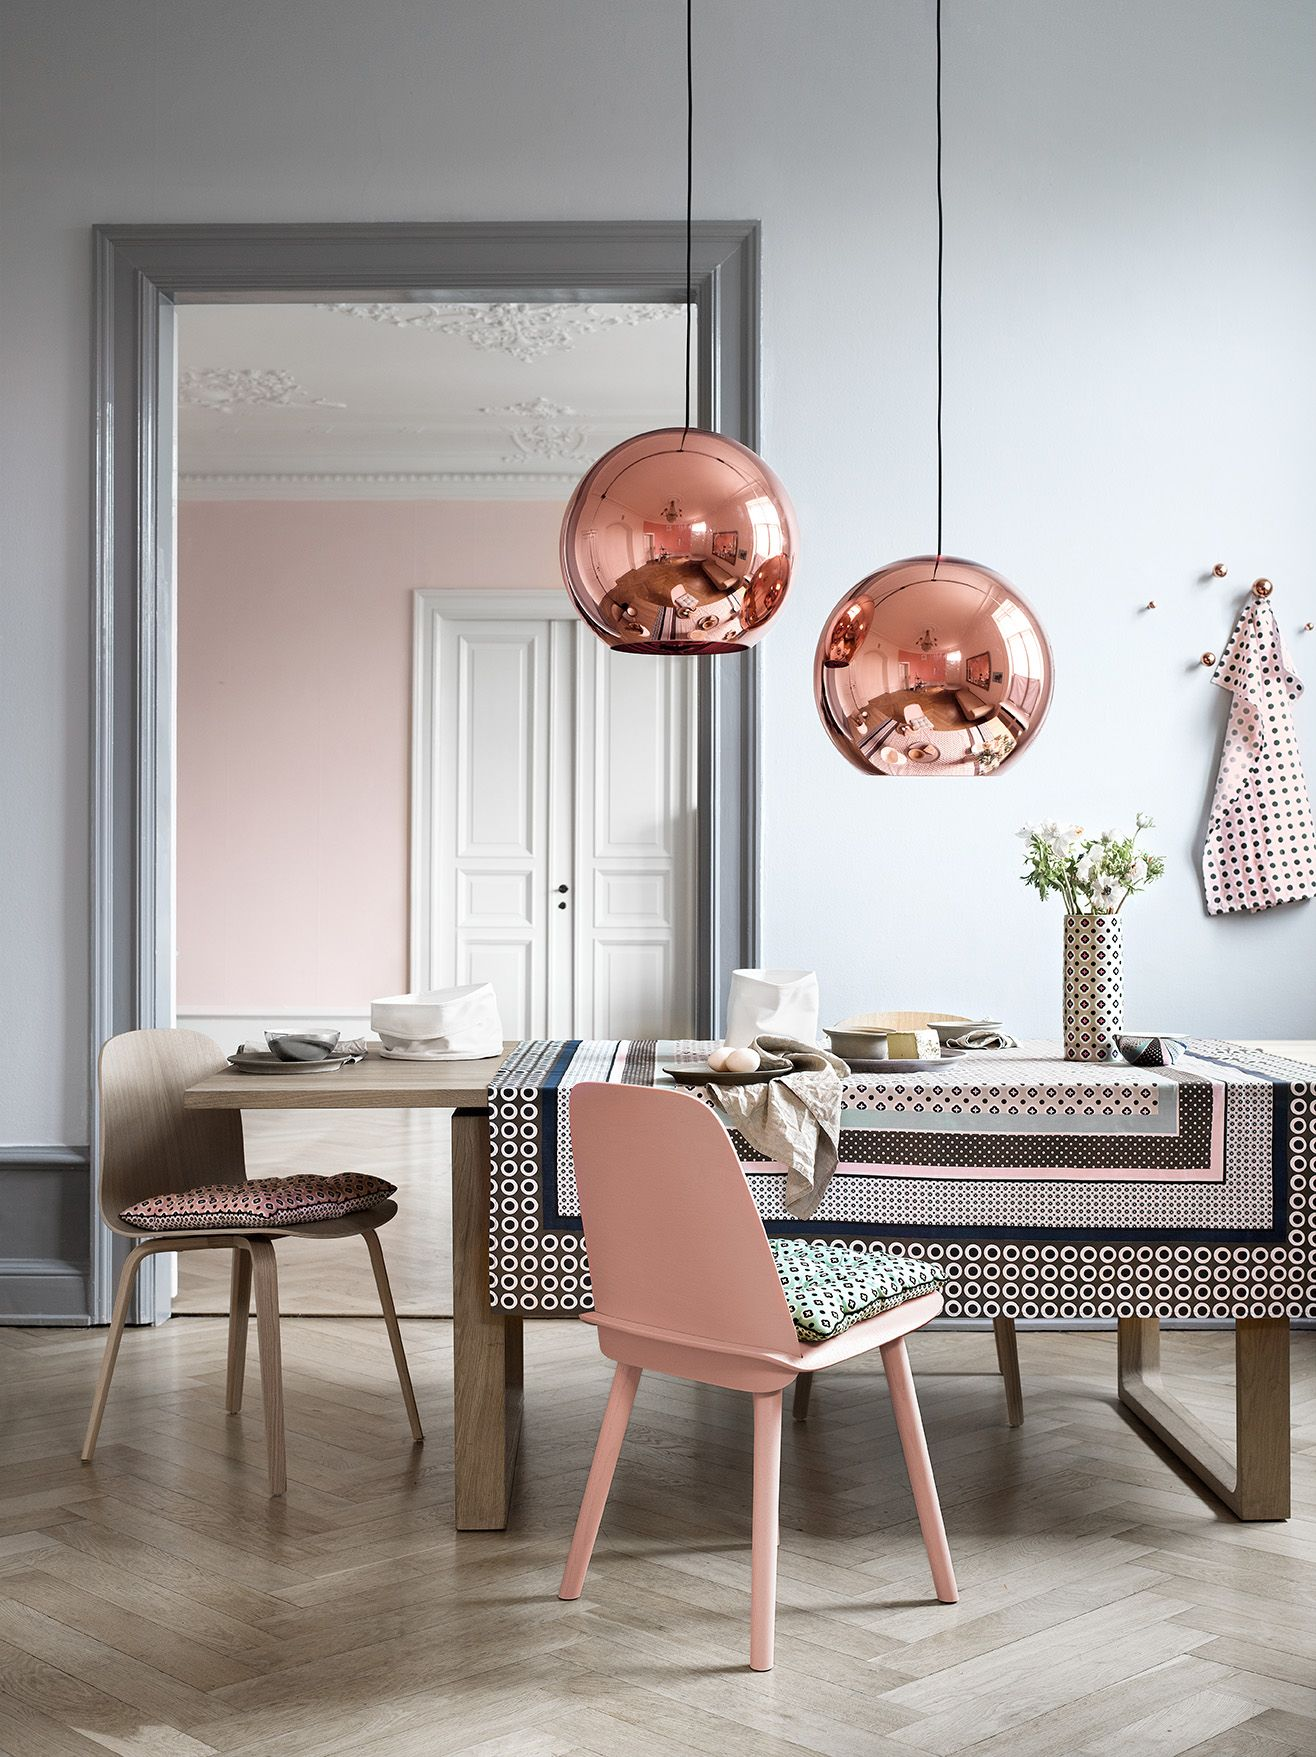 design inspiration { rose gold + grey }dining room with copper